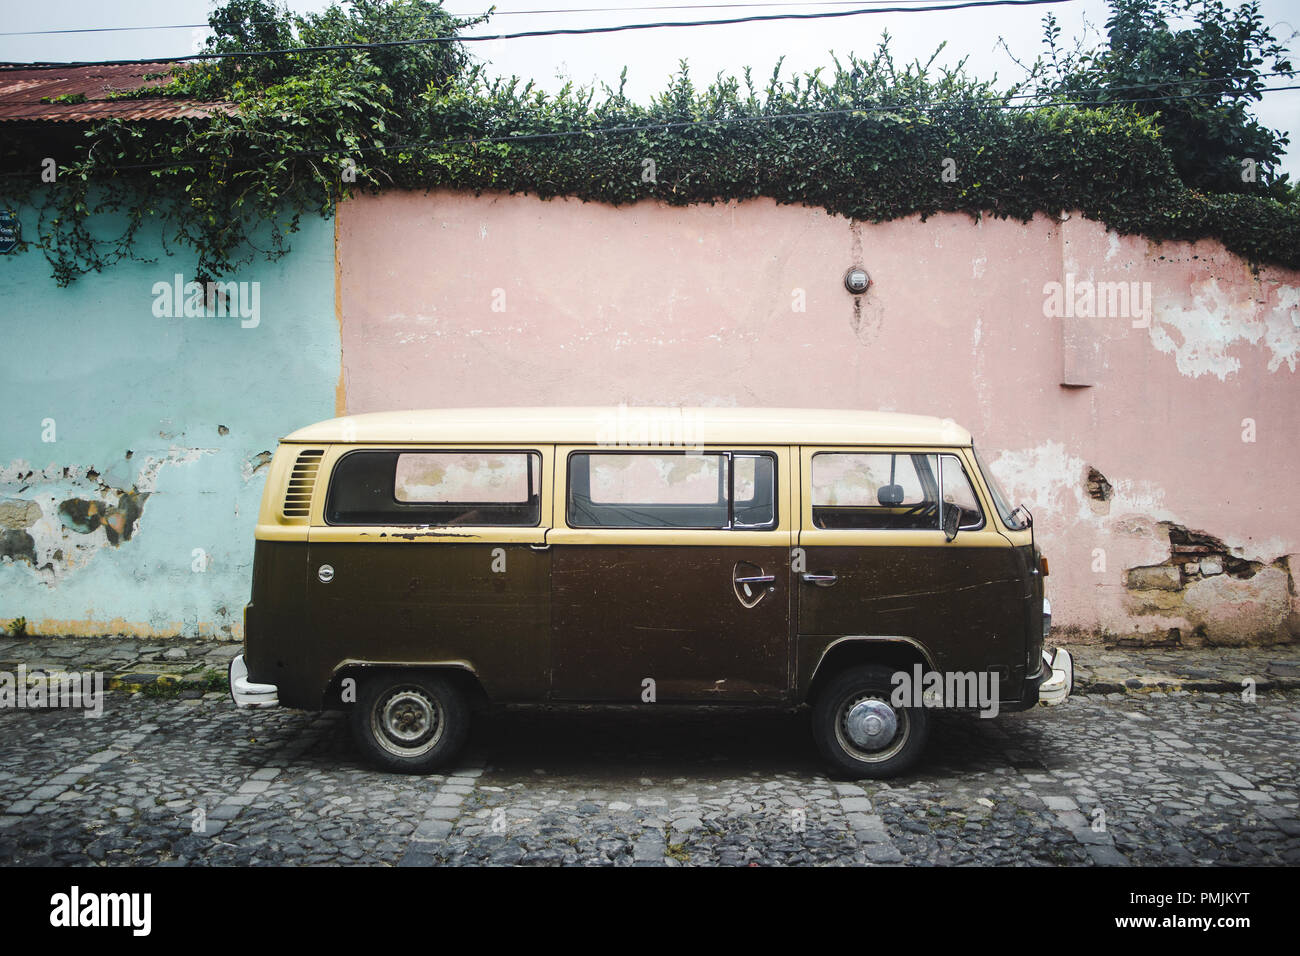 Brown and cream retro campervan from the 1970s parked along a cobbled street with pastel pink and blue walls - Stock Image